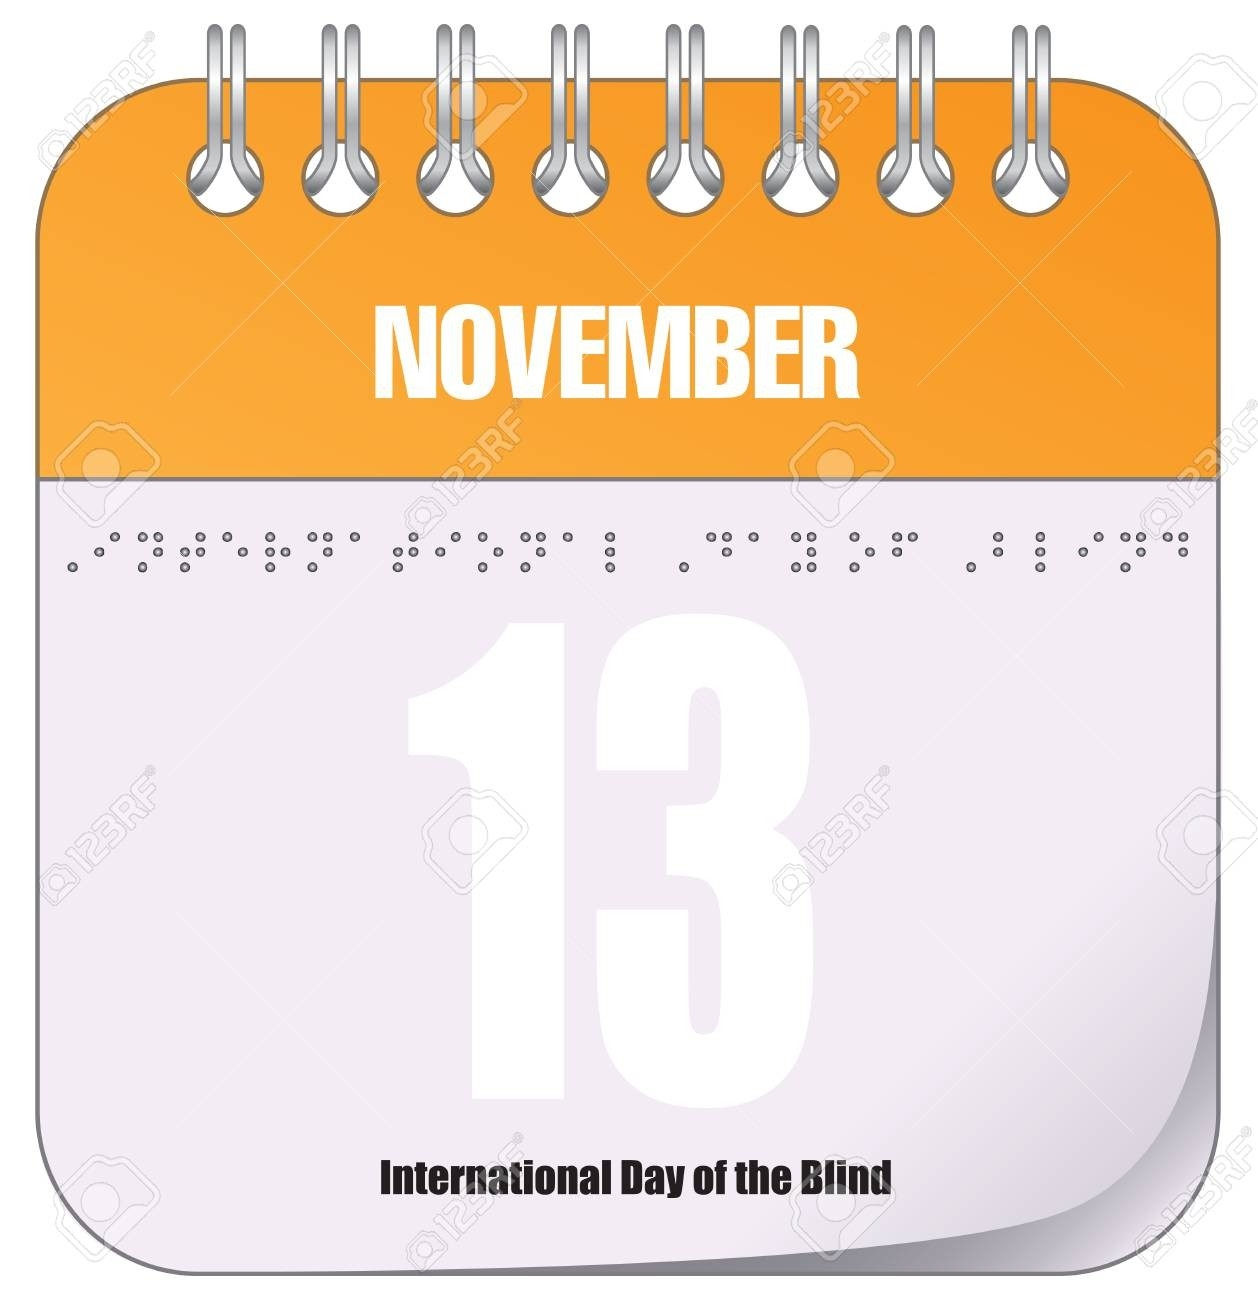 Calendar Event November 13 - International Day Of The Blind  Free Calendar For The Blind